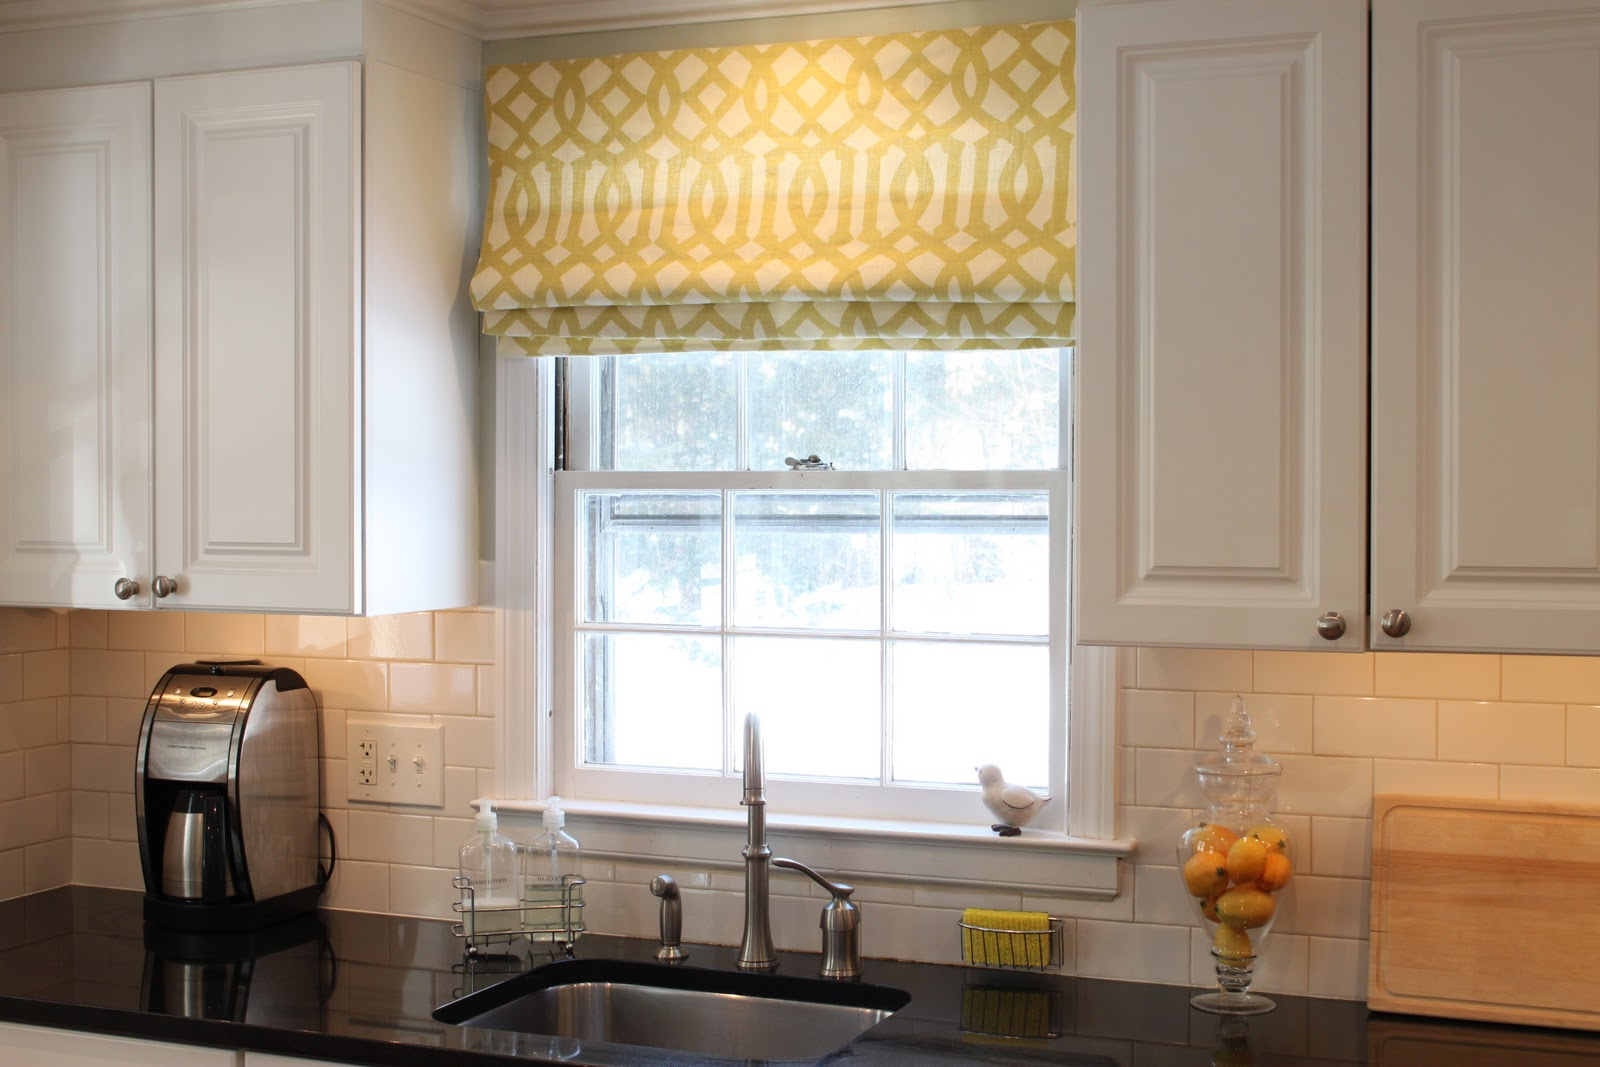 kitchen window coverings cabinet door moulding elite blinds shutters lubbock tx dress up your interior view with